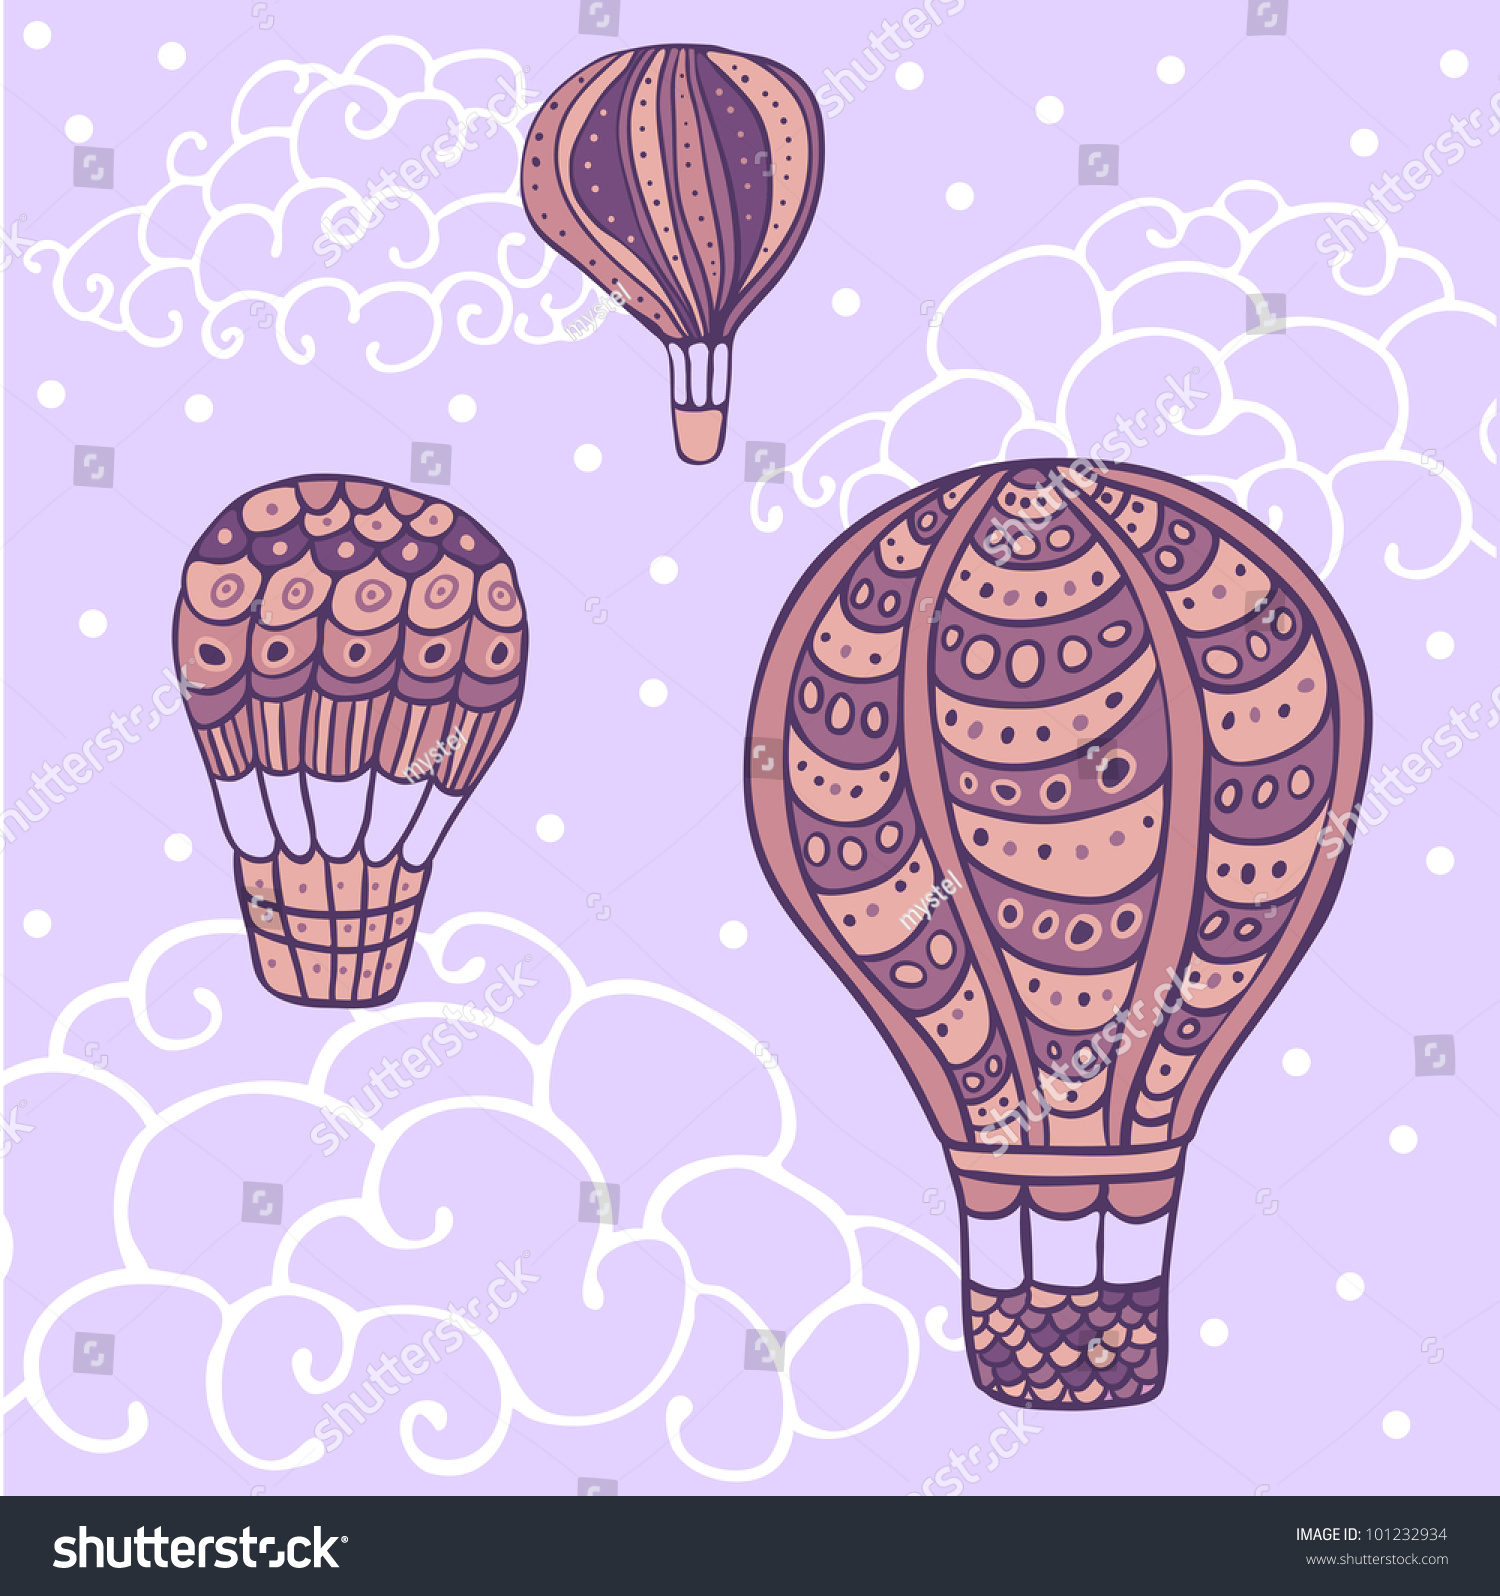 Seamless Colorful Flying Hot Air Balloon Pattern.Clipping